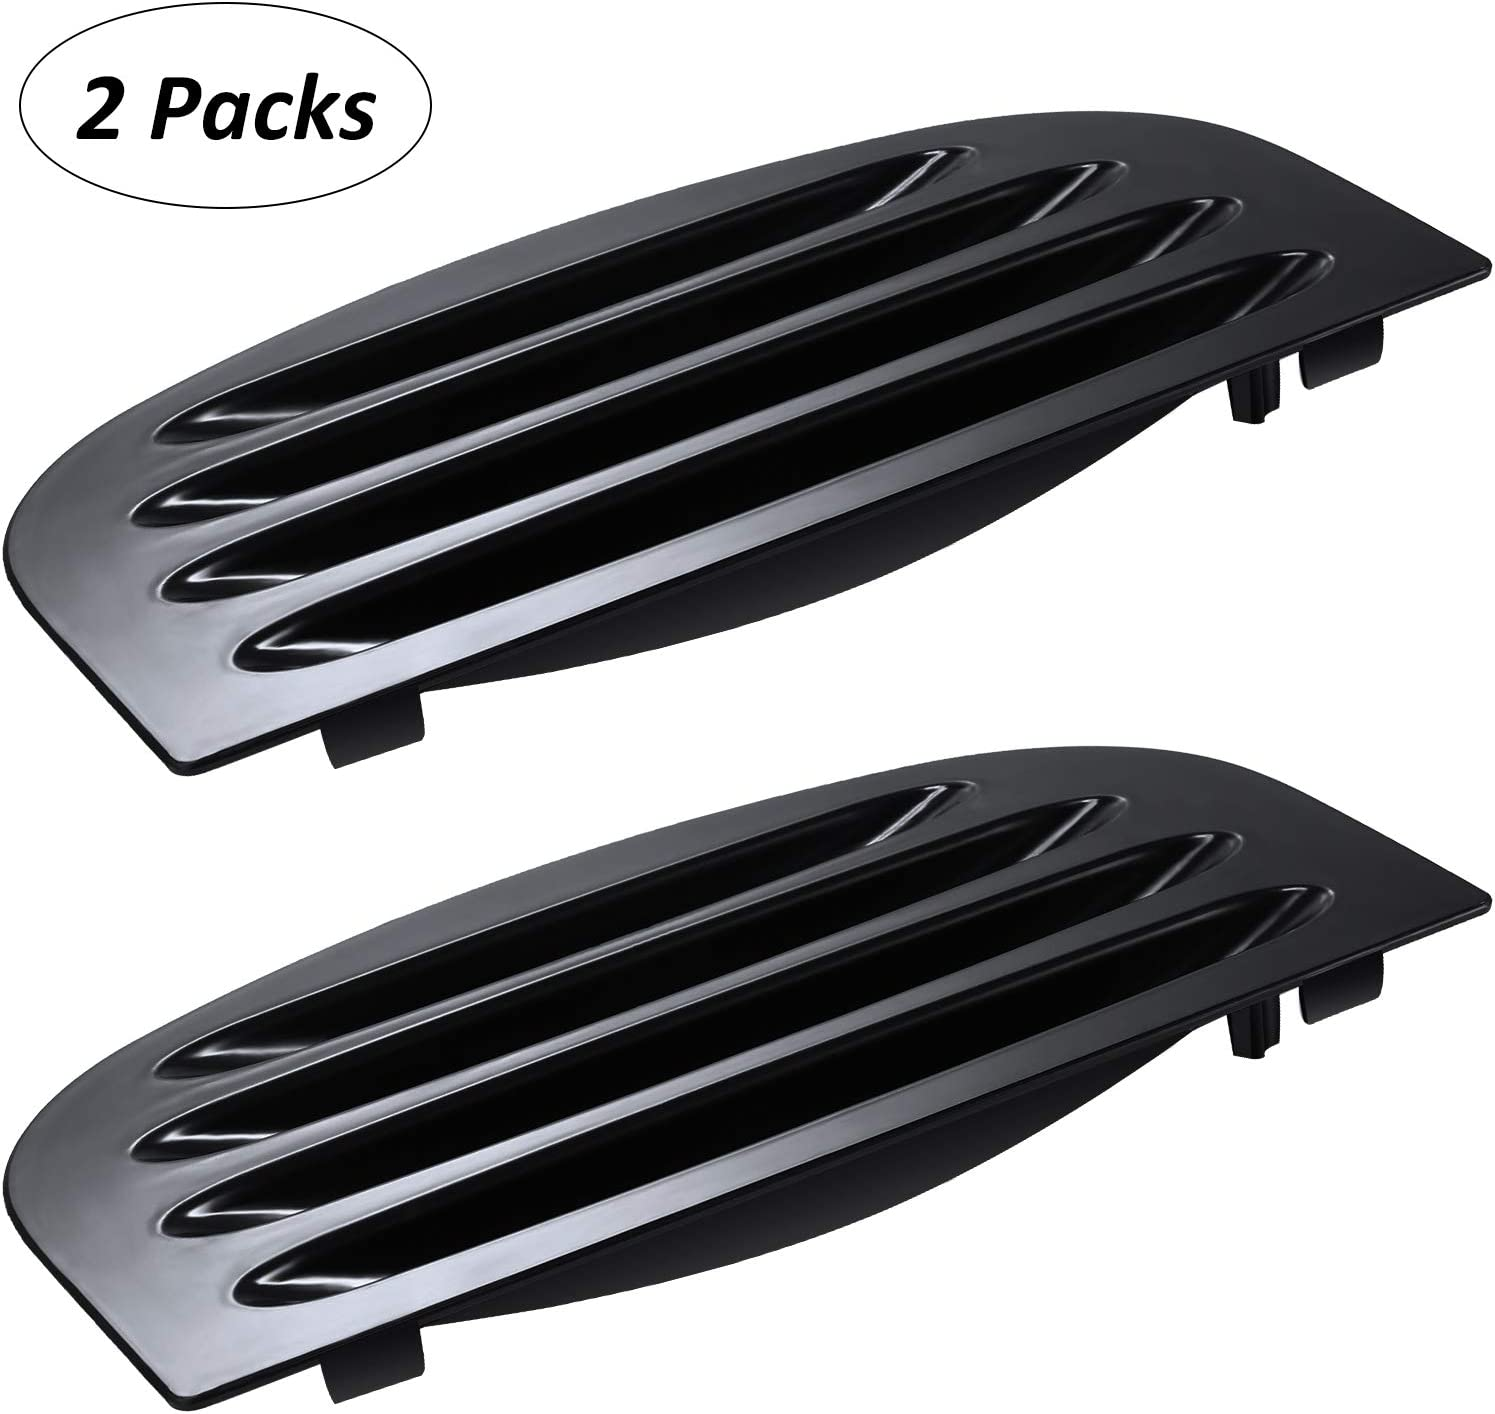 2 Pieces WR17X11655 Refrigerator Drip Tray Overflow Grille Refrigerator Dispenser Compatible with GE Replace PS964306 AP3775570, Black